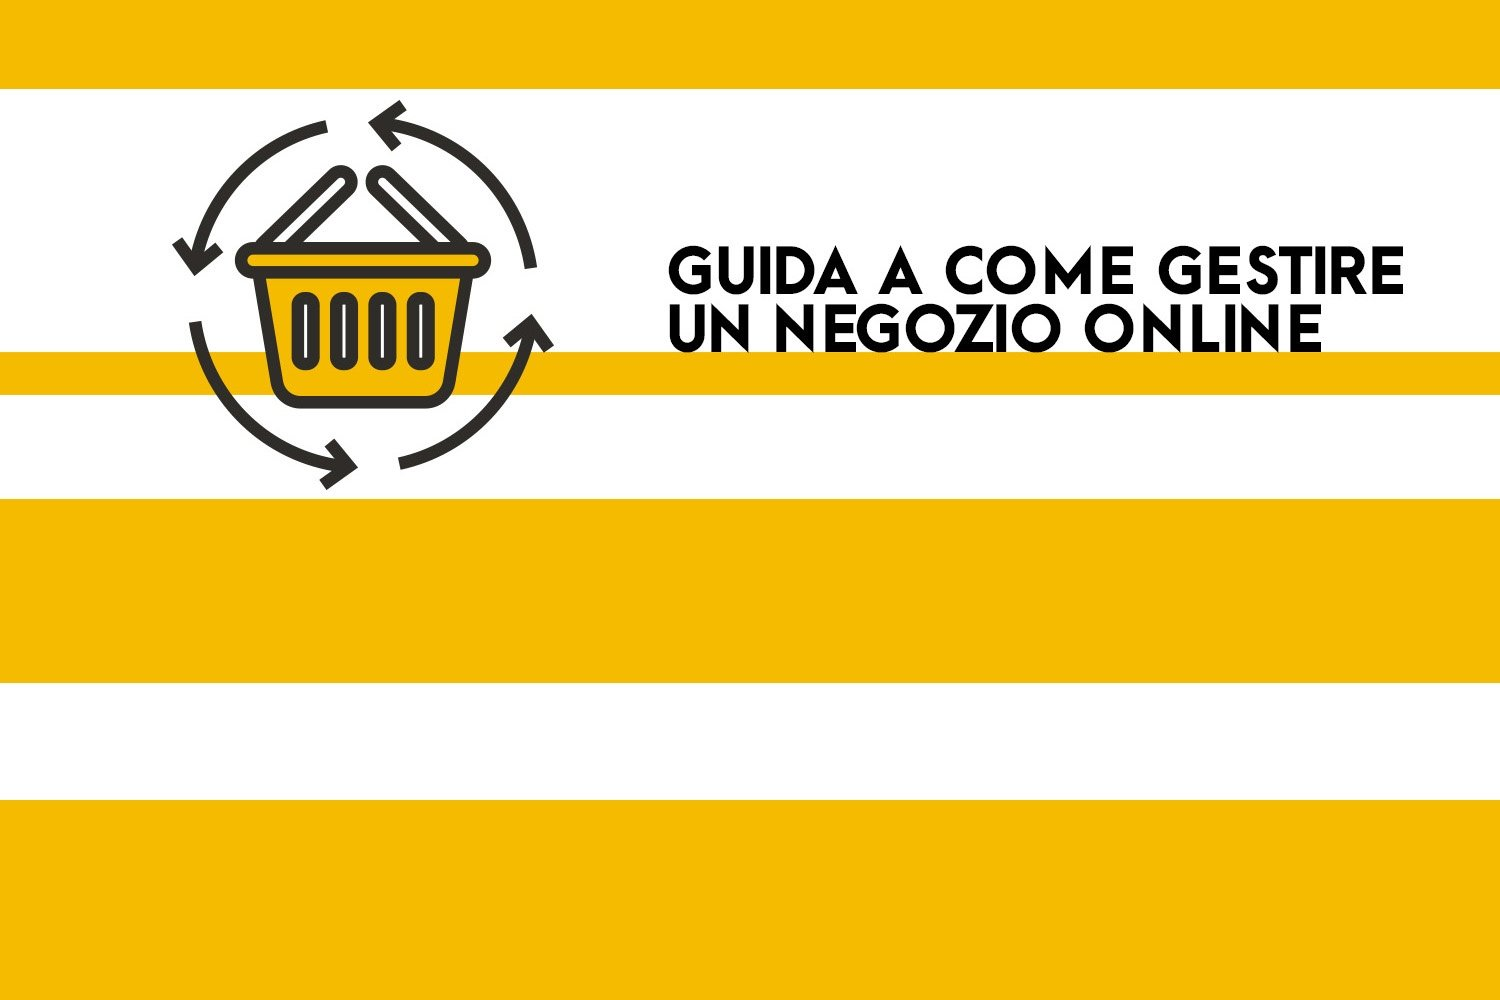 Le guide di OFG Advertising: gestire un negozio online